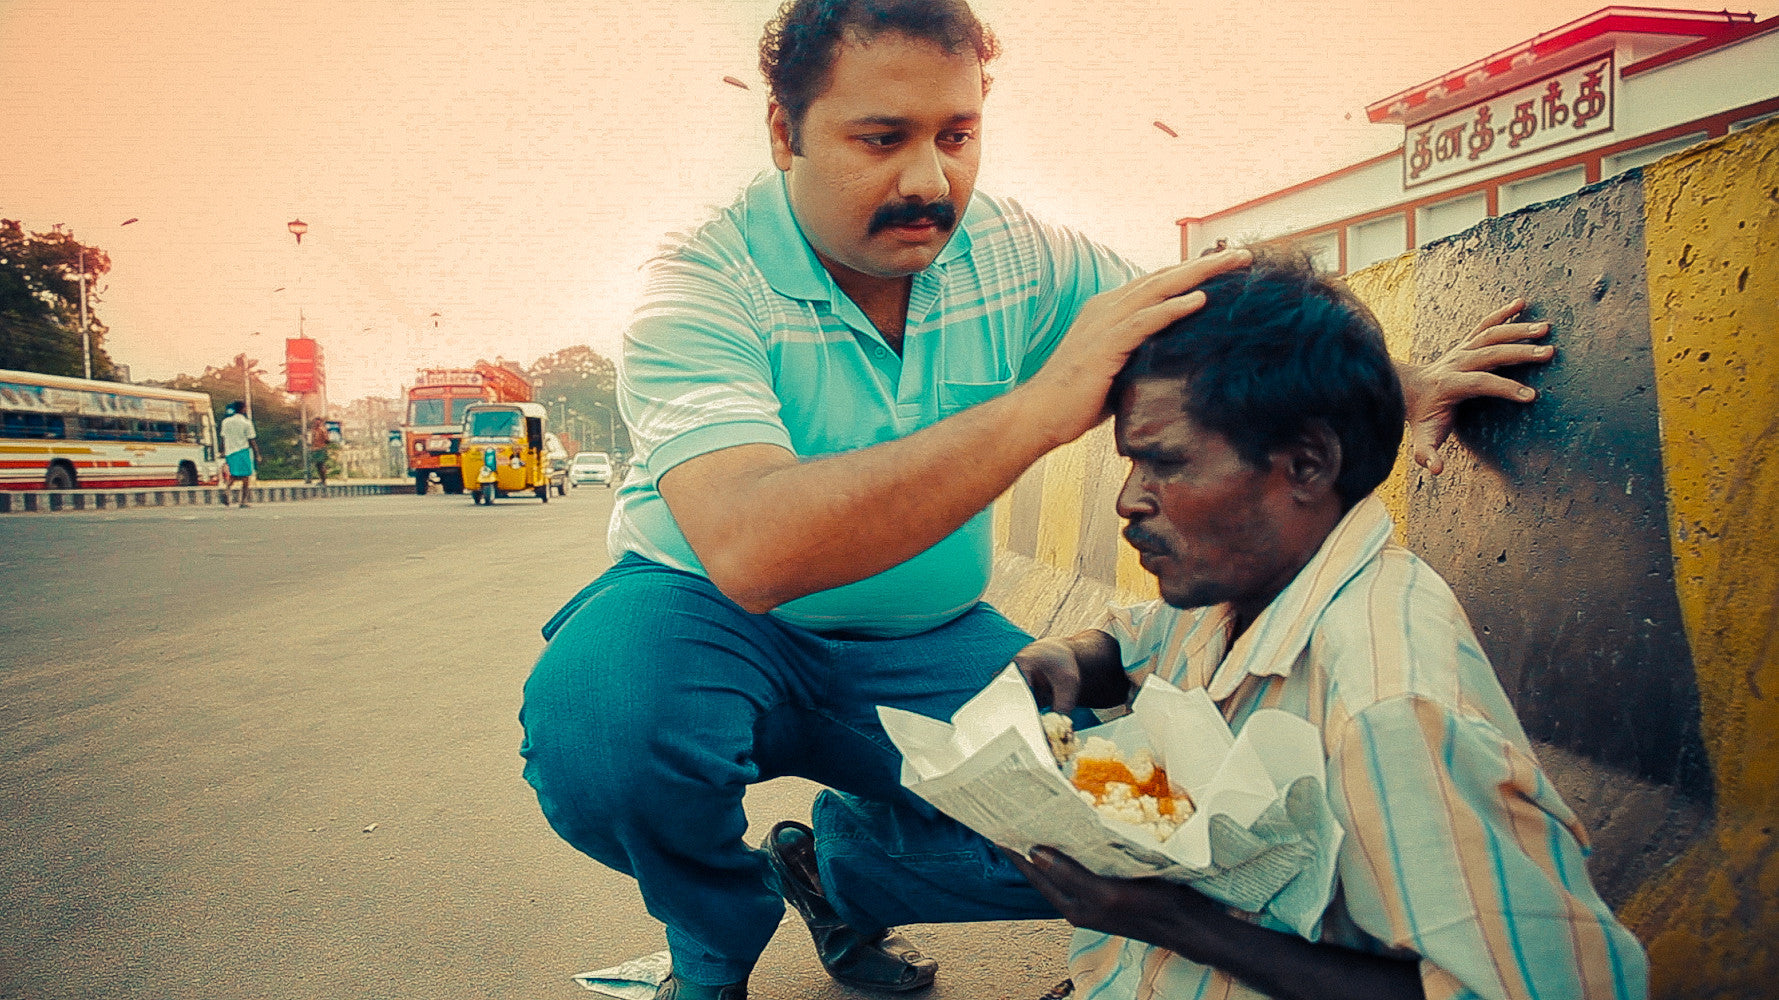 Narayanan Krishnan, five star chef who quit to serve food to the poor.